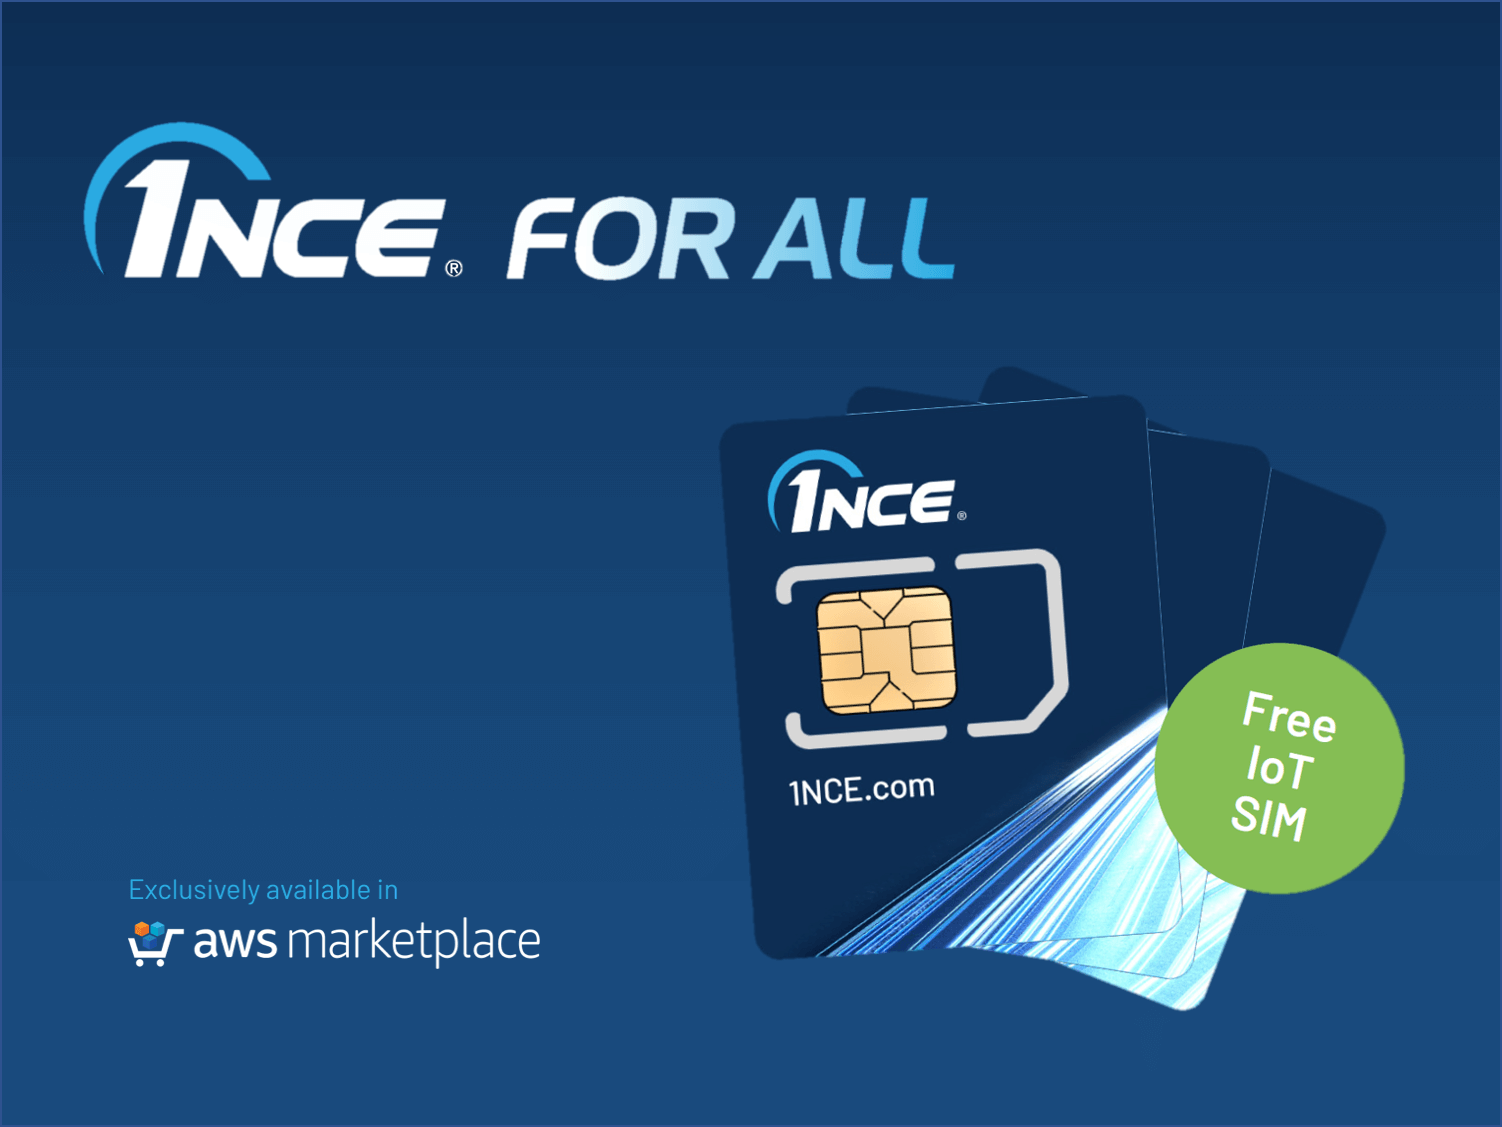 1NCE is offering a year's free cellular IoT connectivity to eliminate the entry barriers for developing cloud-based IoT products and services.